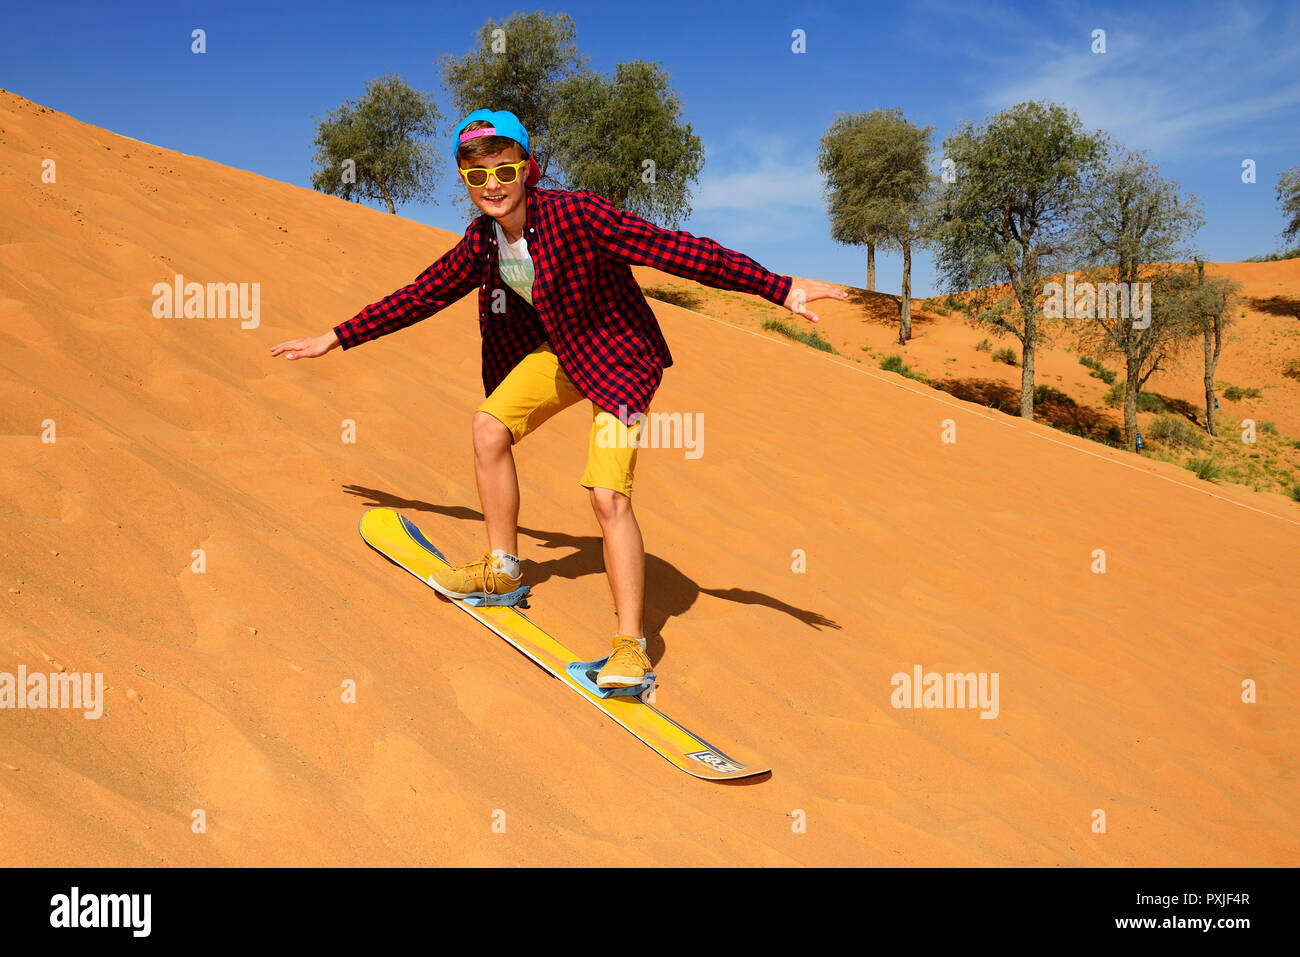 Tourist with Snowboard on the Dune, Ras al Khaimah, United Arab Emirates - Stock Image